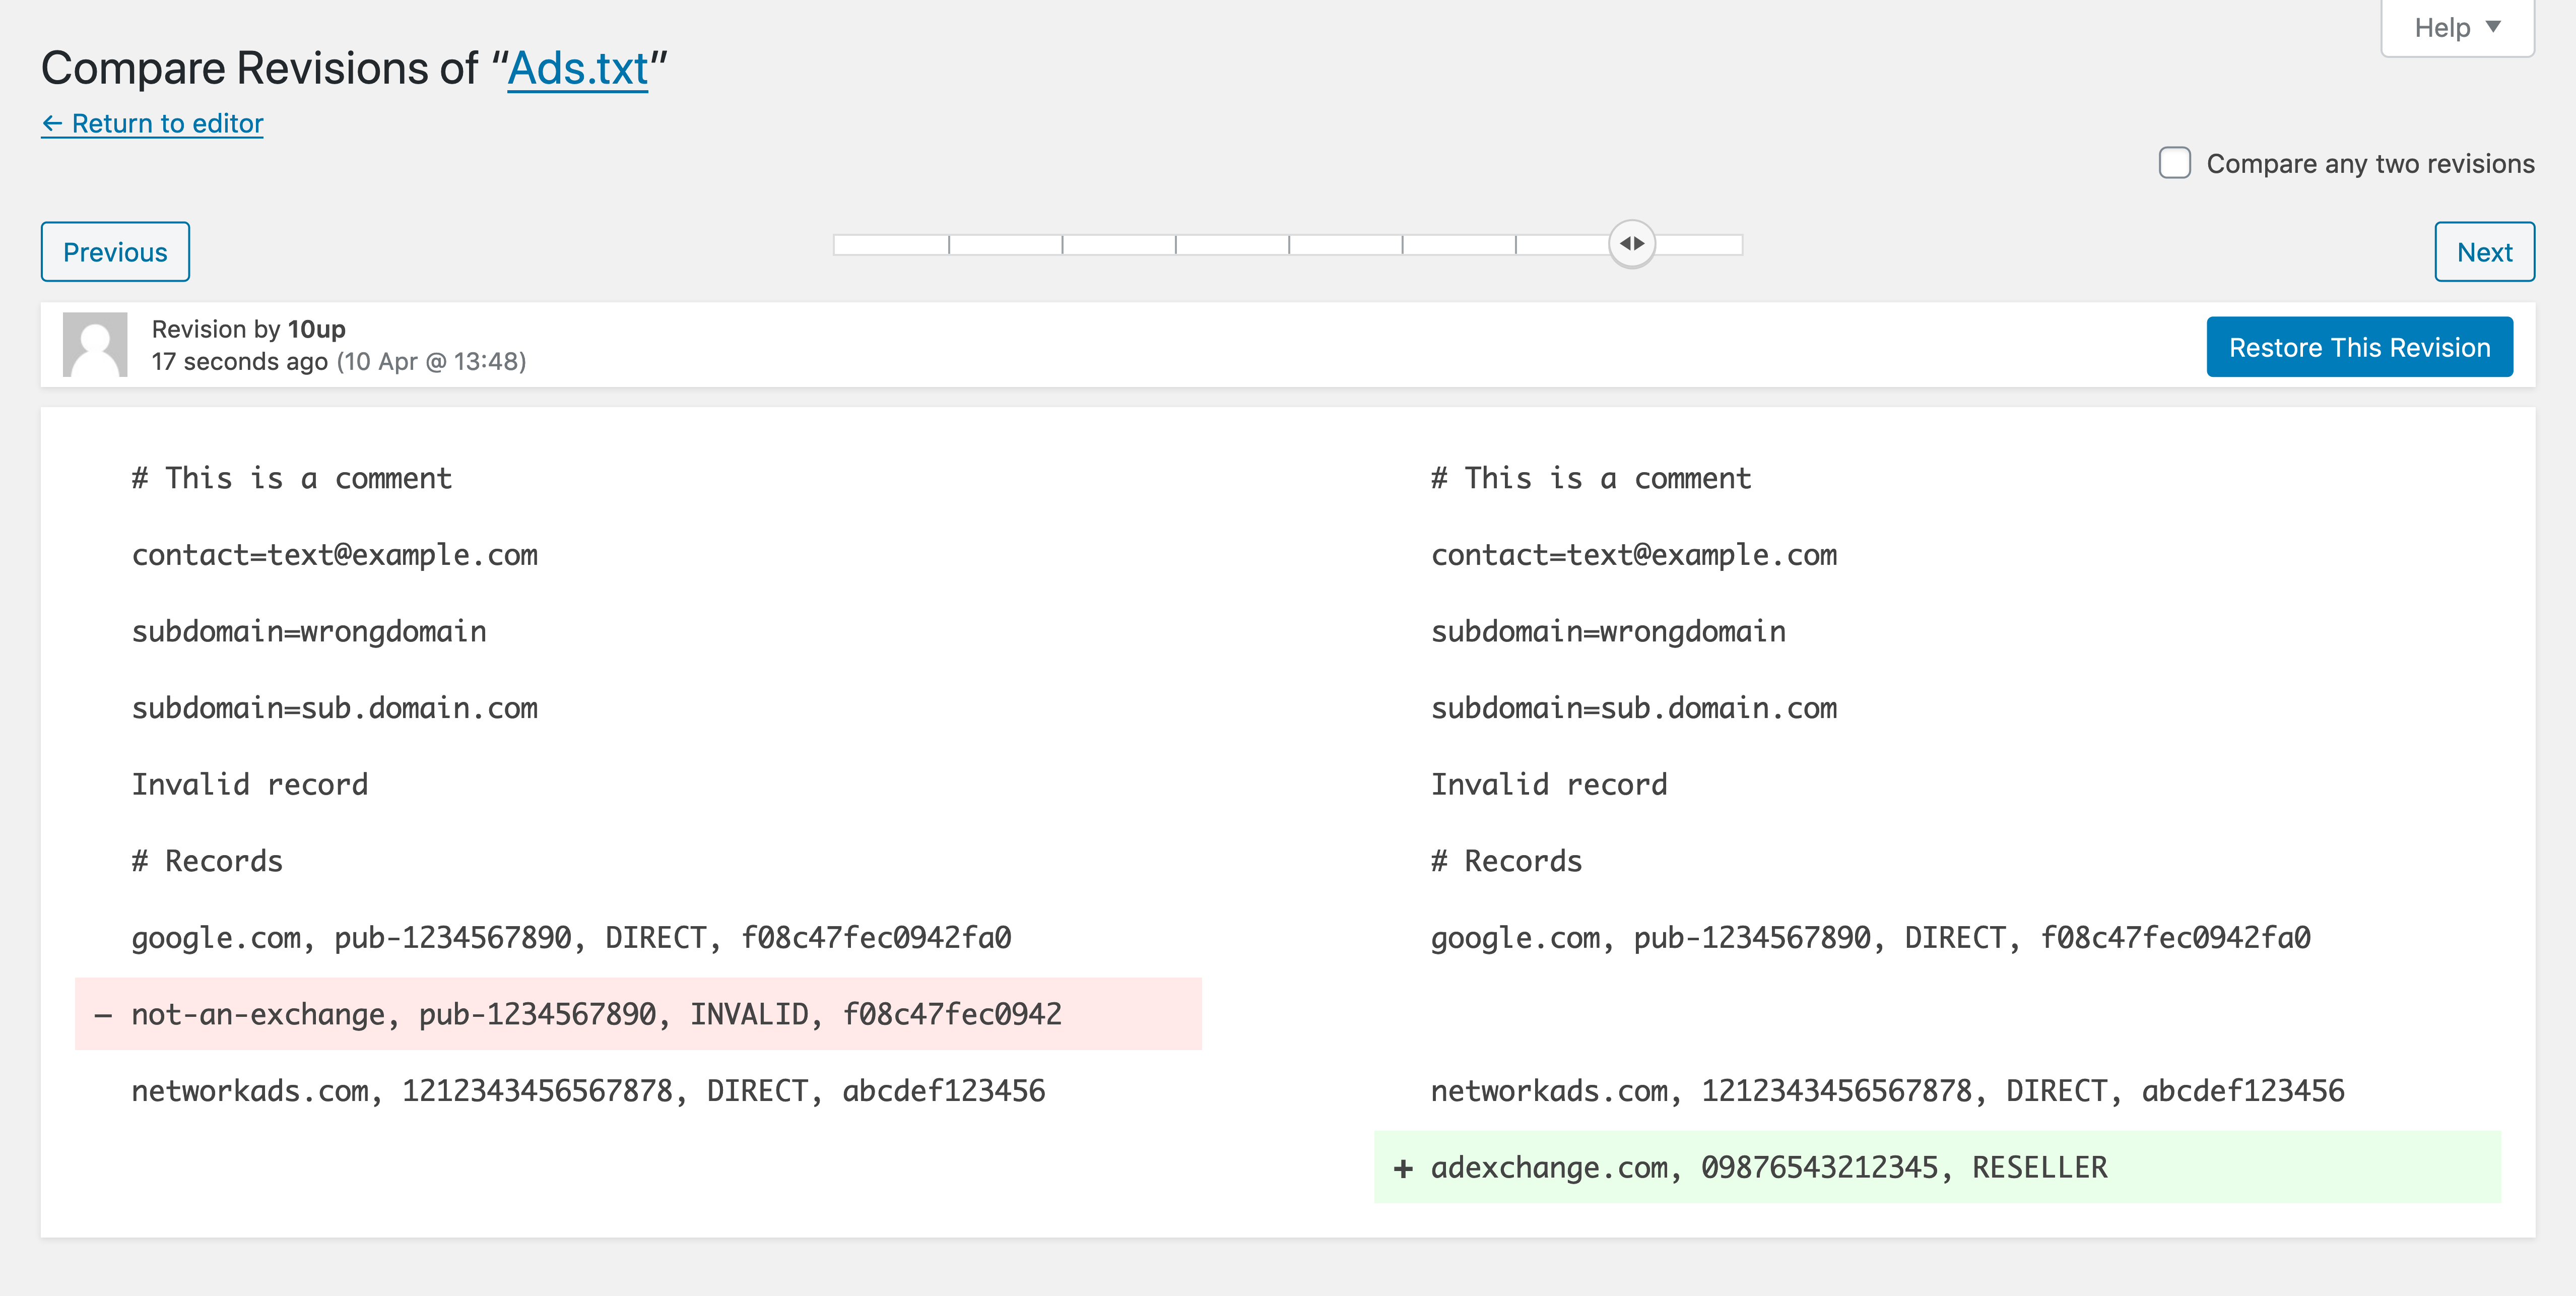 Example of comparing ads.txt file revisions.